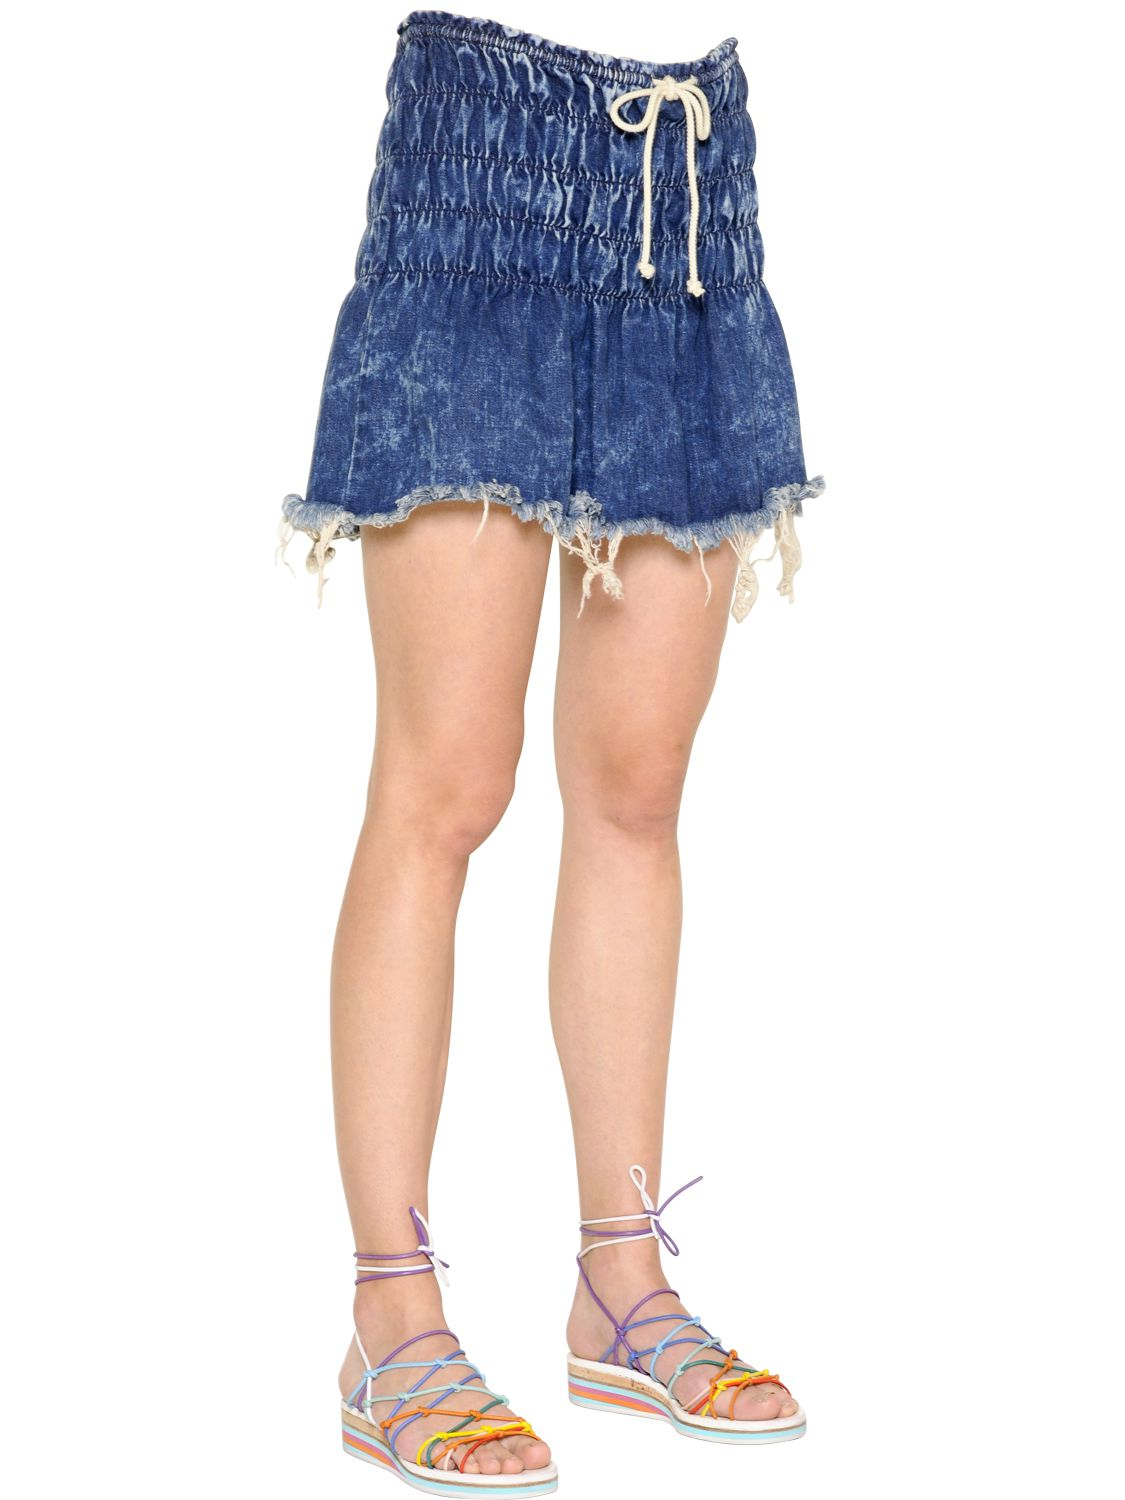 Chloé Frayed Hem Washed Cotton Denim Skirt in Blue | Lyst